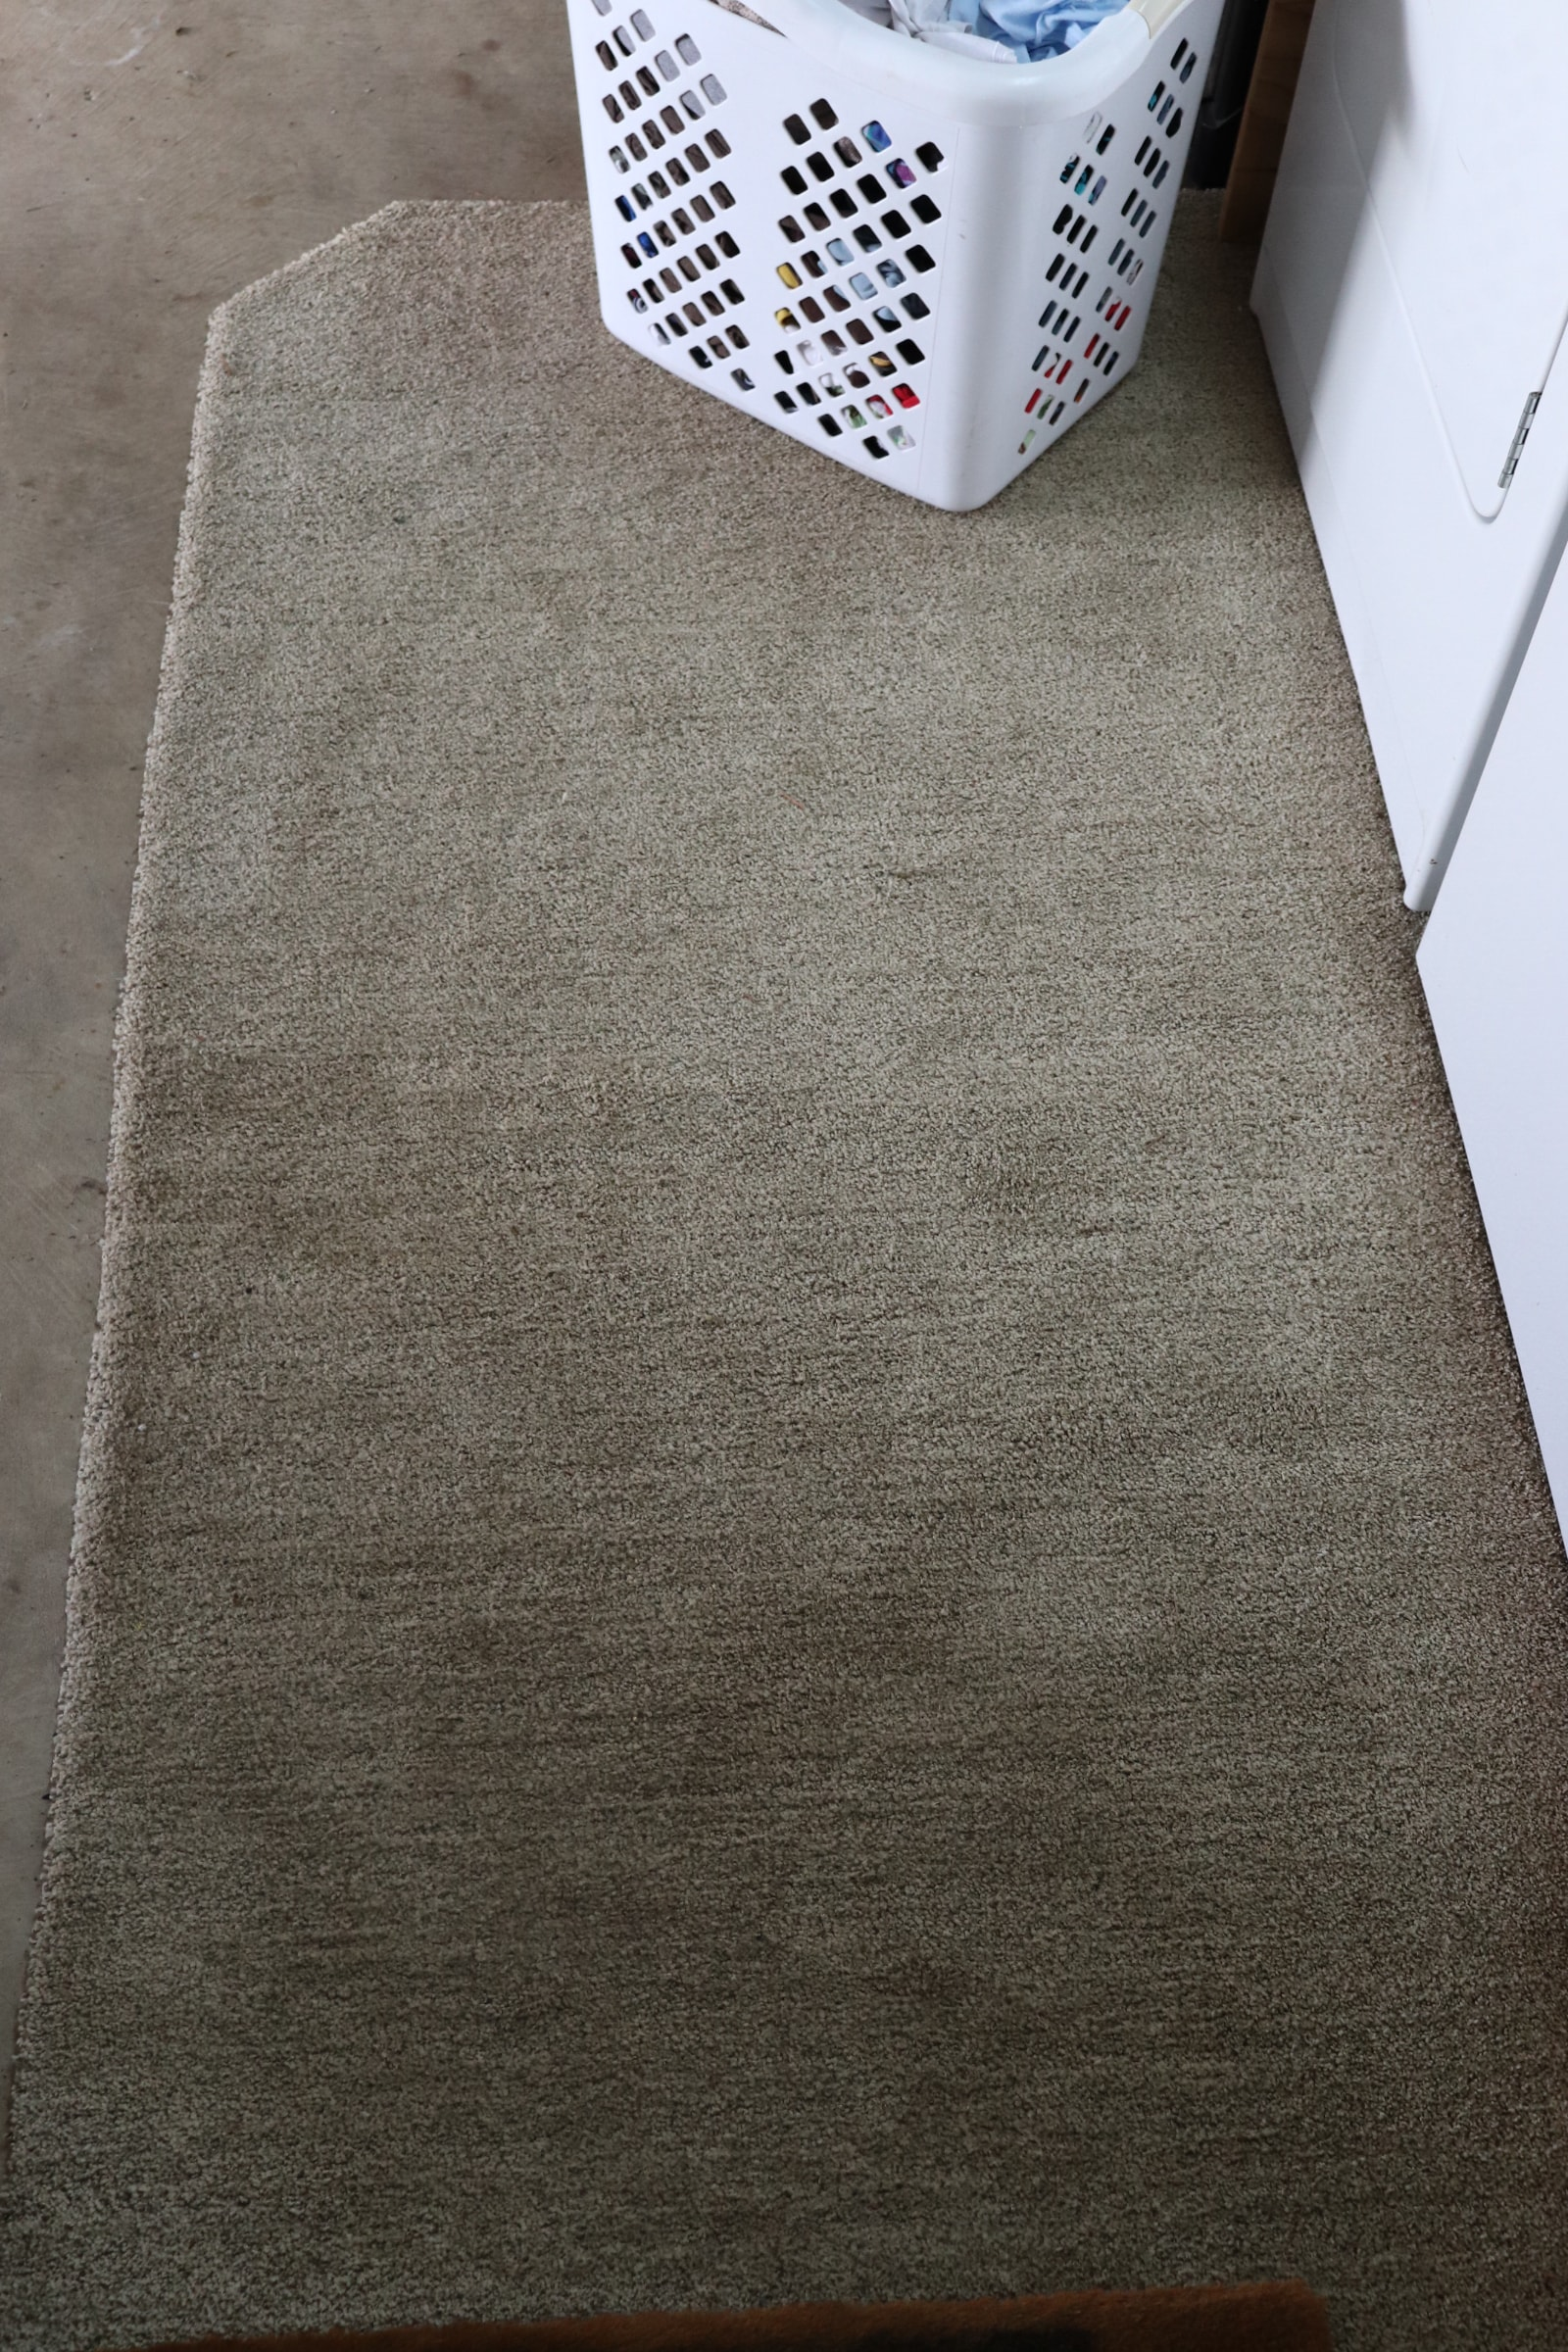 tan carpet with a white laundry basket and a white washer and dryer